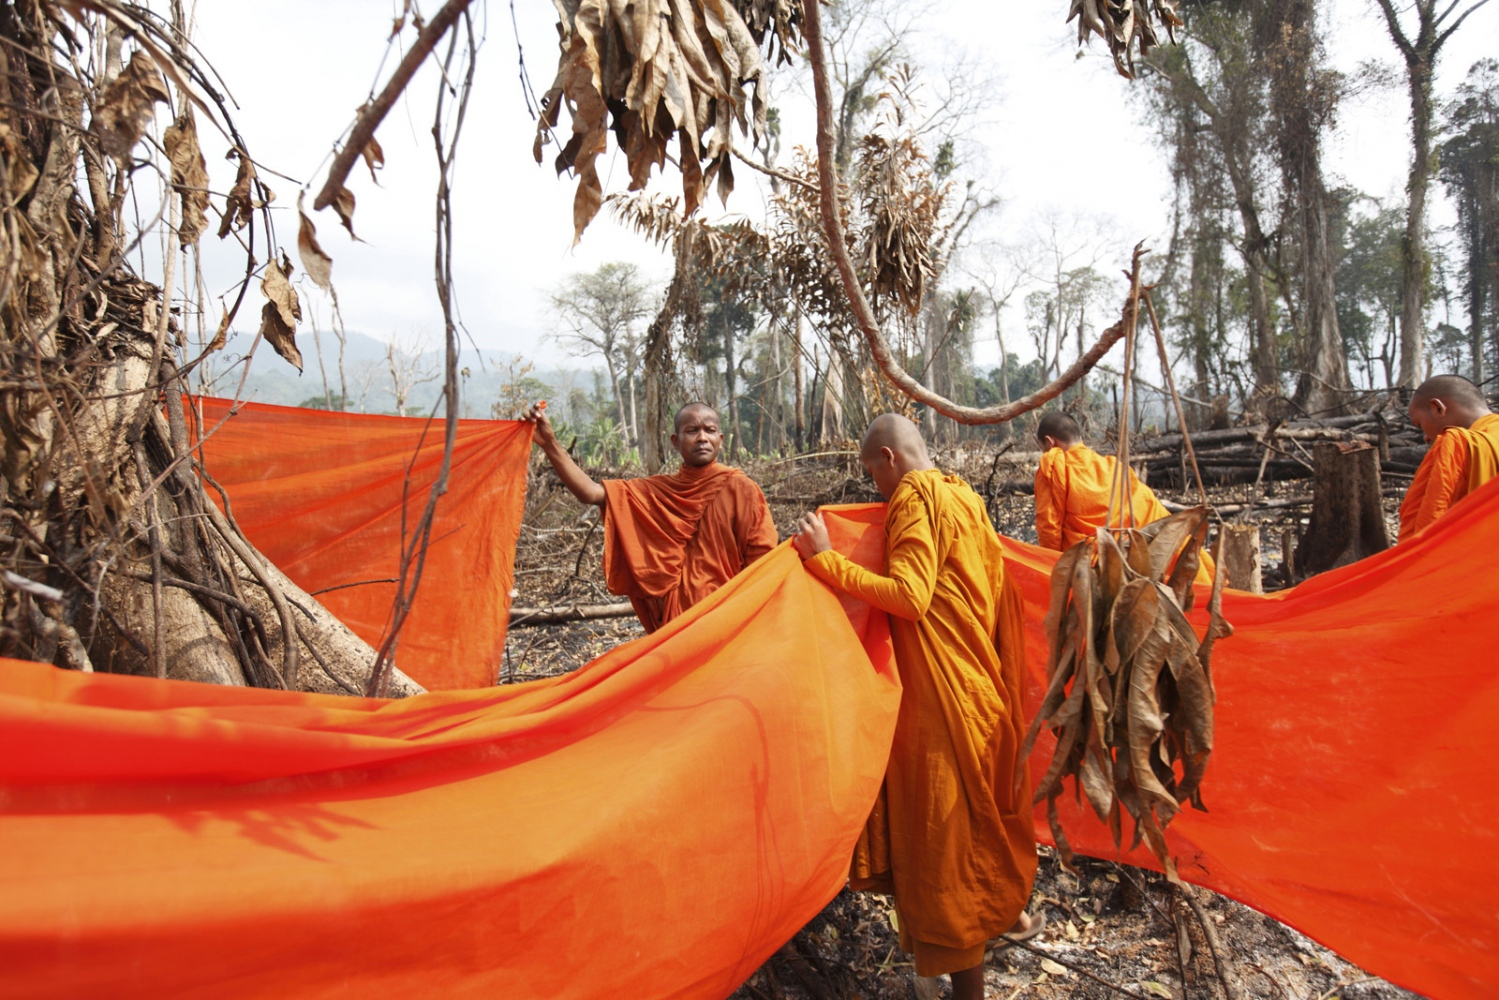 Cambodian Buddhist monka bless large trees by wrapping orange cloth around it and praying. Following uncontrolled forest destruction in the Central Cardamom Protected Forest (CCPF) an eco-warrior monk movement has begun whereby monks and villagers try to protect areas of forest by blessing trees to deter would-be loggers.  This was the first tree ordination in a forest area on the edge of Ta Tay Leu village that has just been cleared to make-way for a banana plantation. Whilst they were too late to save the smaller trees they were able to bless and tie orange material around the remaining large trees.